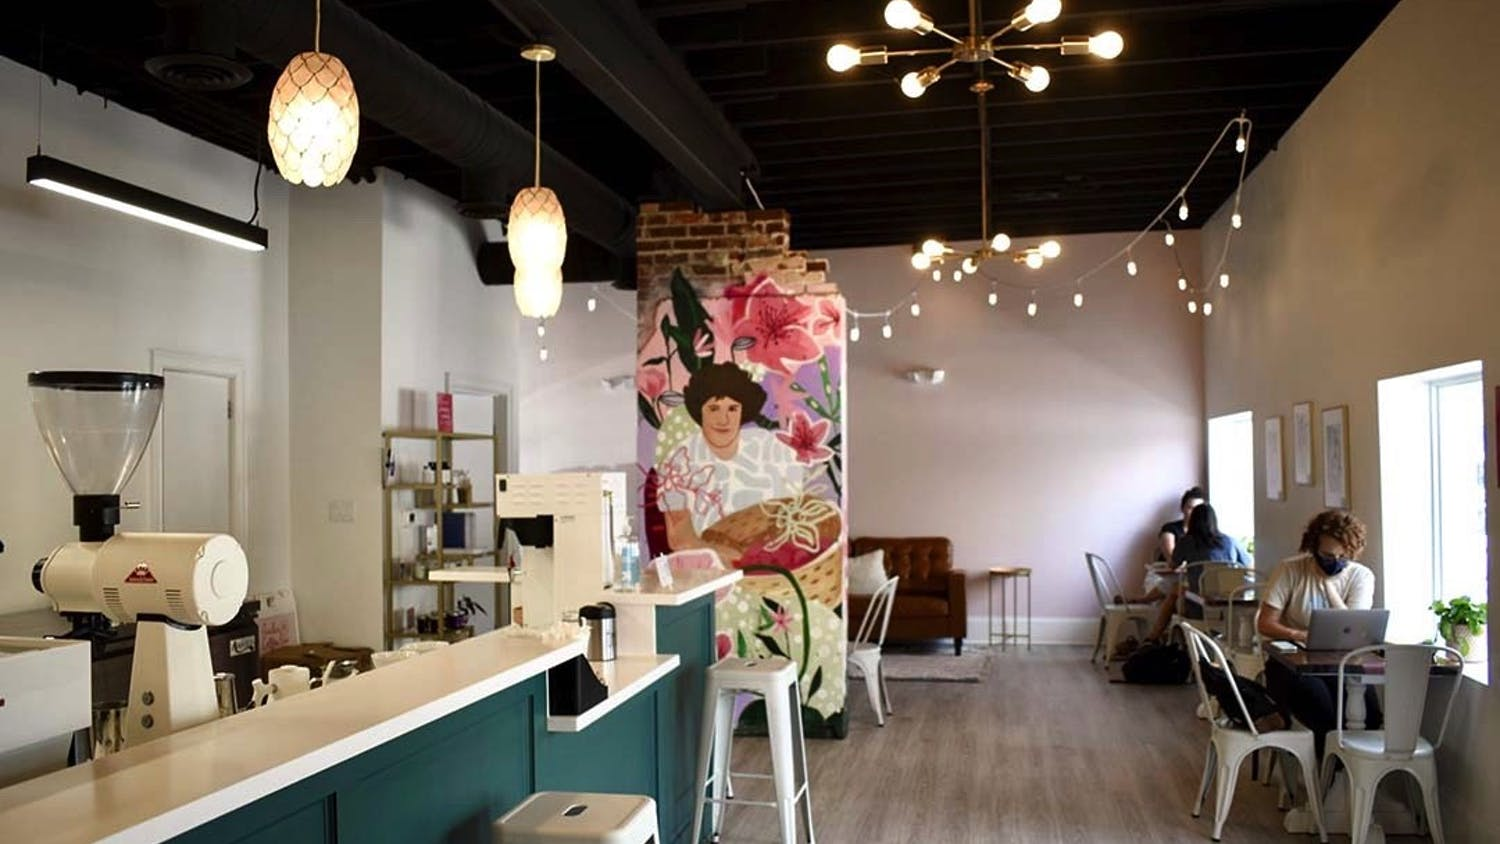 The interior of Azalea Coffee Bar, a chic new woman-owned establishment on Devine Street. The mural is of owner Brittany Koester's mother, and contributes to the shop's goal of uplifting women and reducing disparities in the industry.